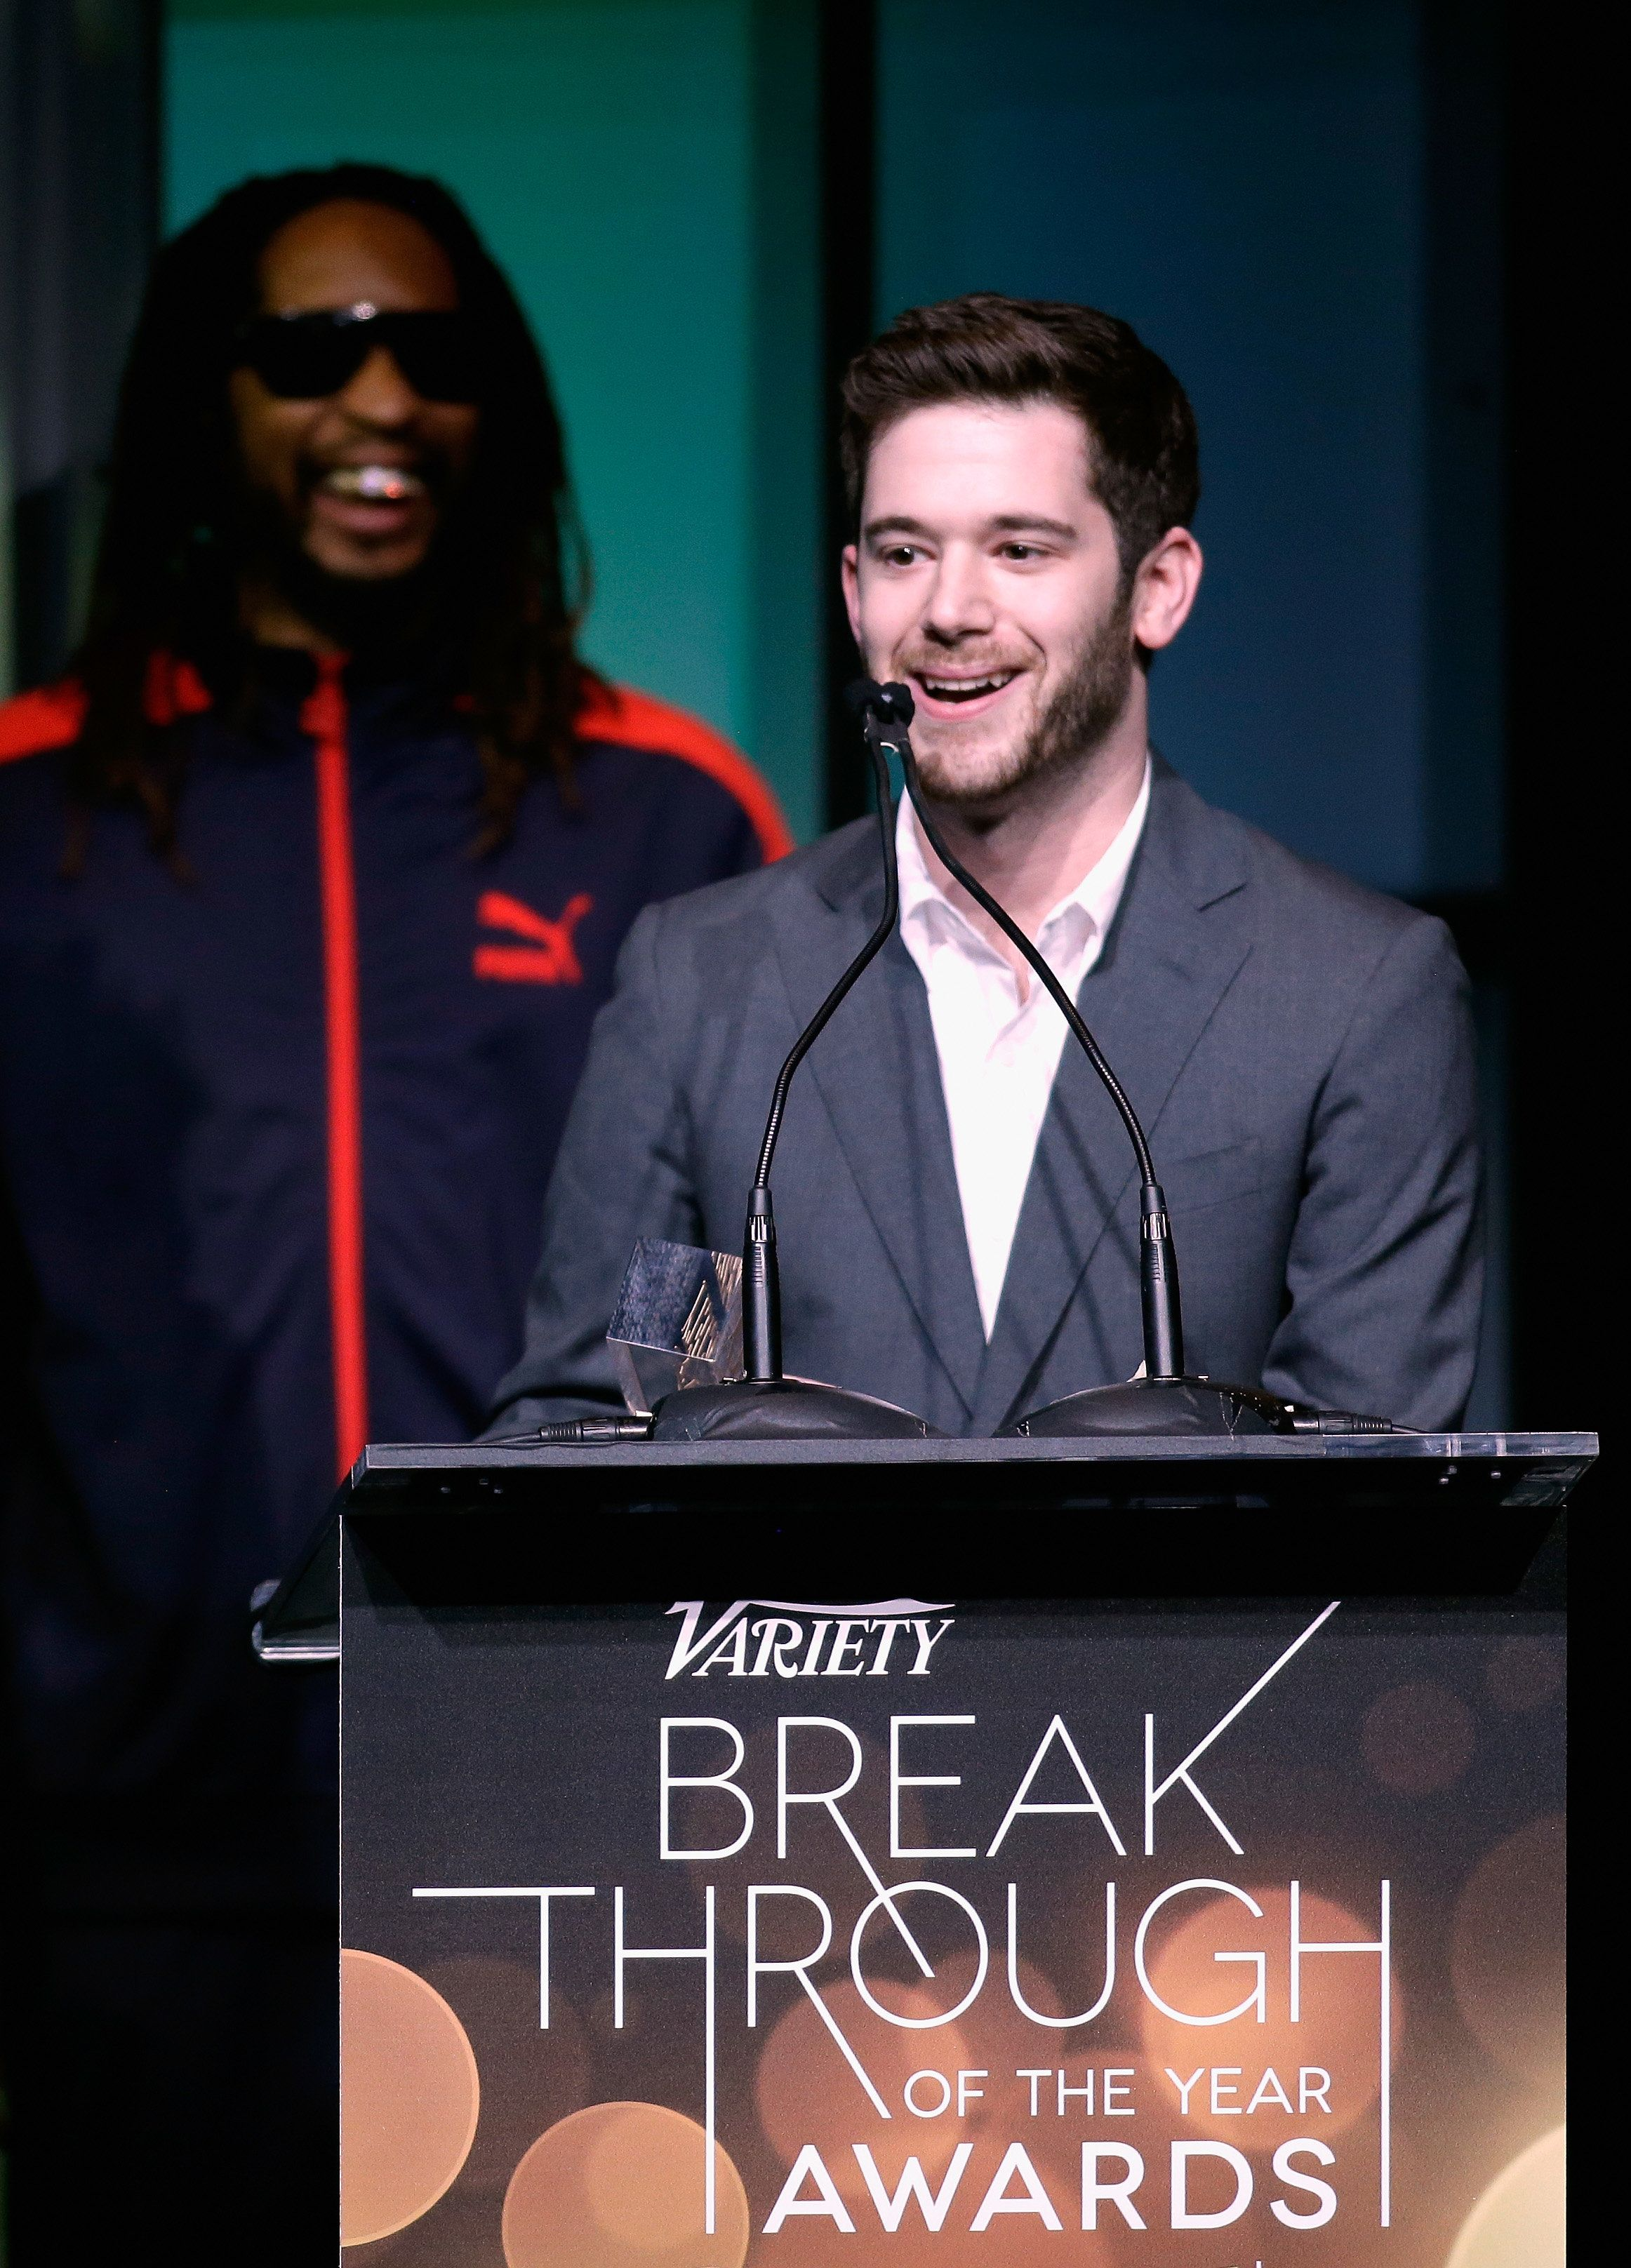 Colin Kroll, seen accepting the Breakthrough Award for Emerging Technology from rapper Lil Jon in 2014, co-founded HQ Trivia.